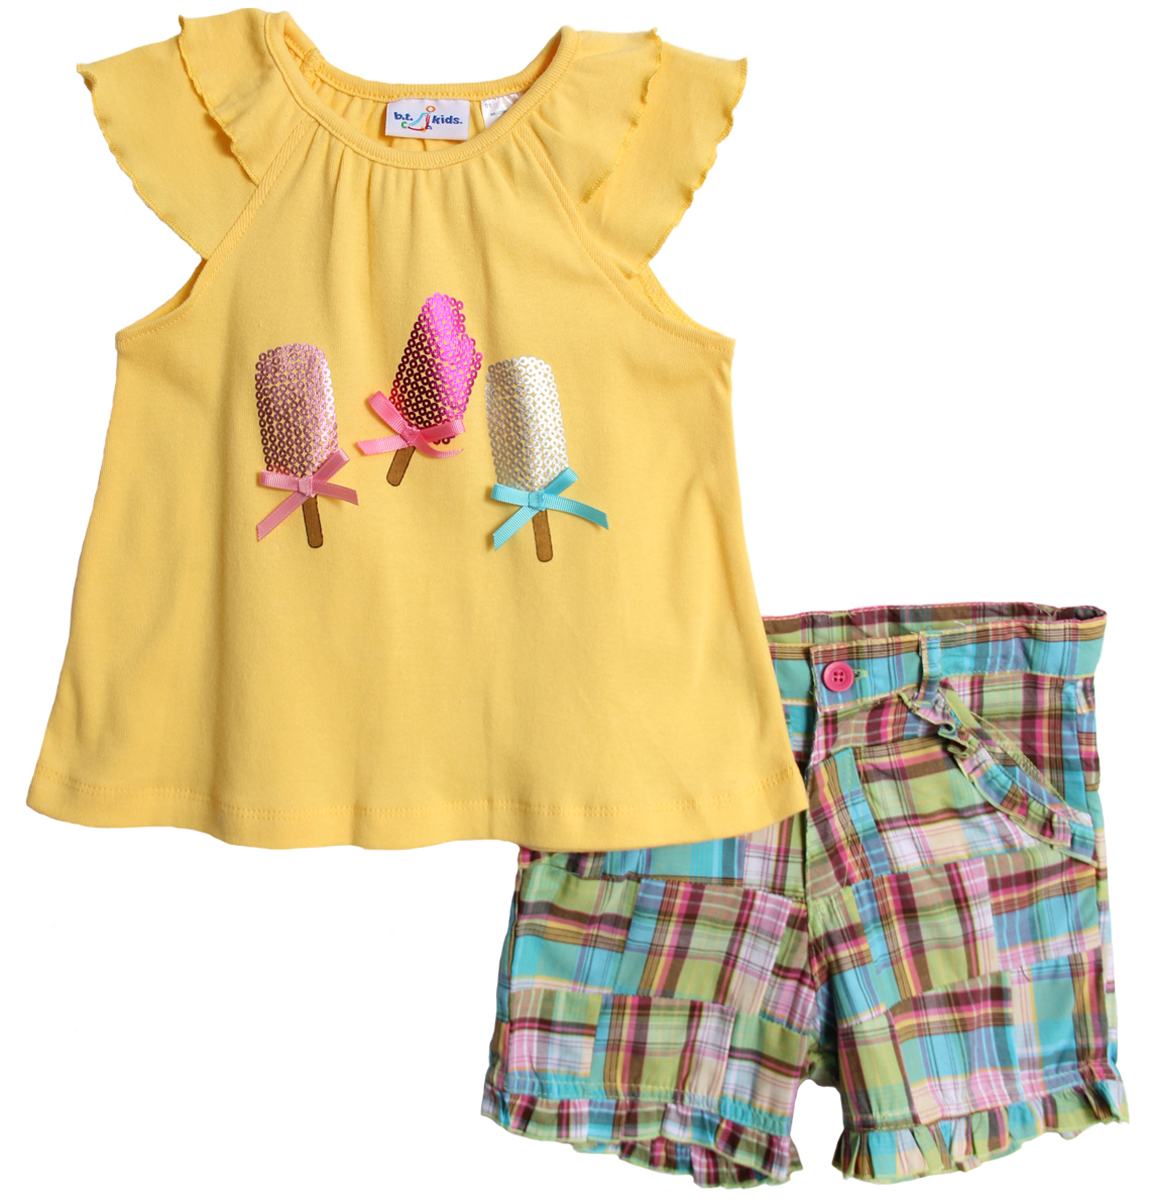 B.T. Kids Little Girls 2 Piece Summer Popsicle Yellow Top Patchwork Shorts Set at Sears.com